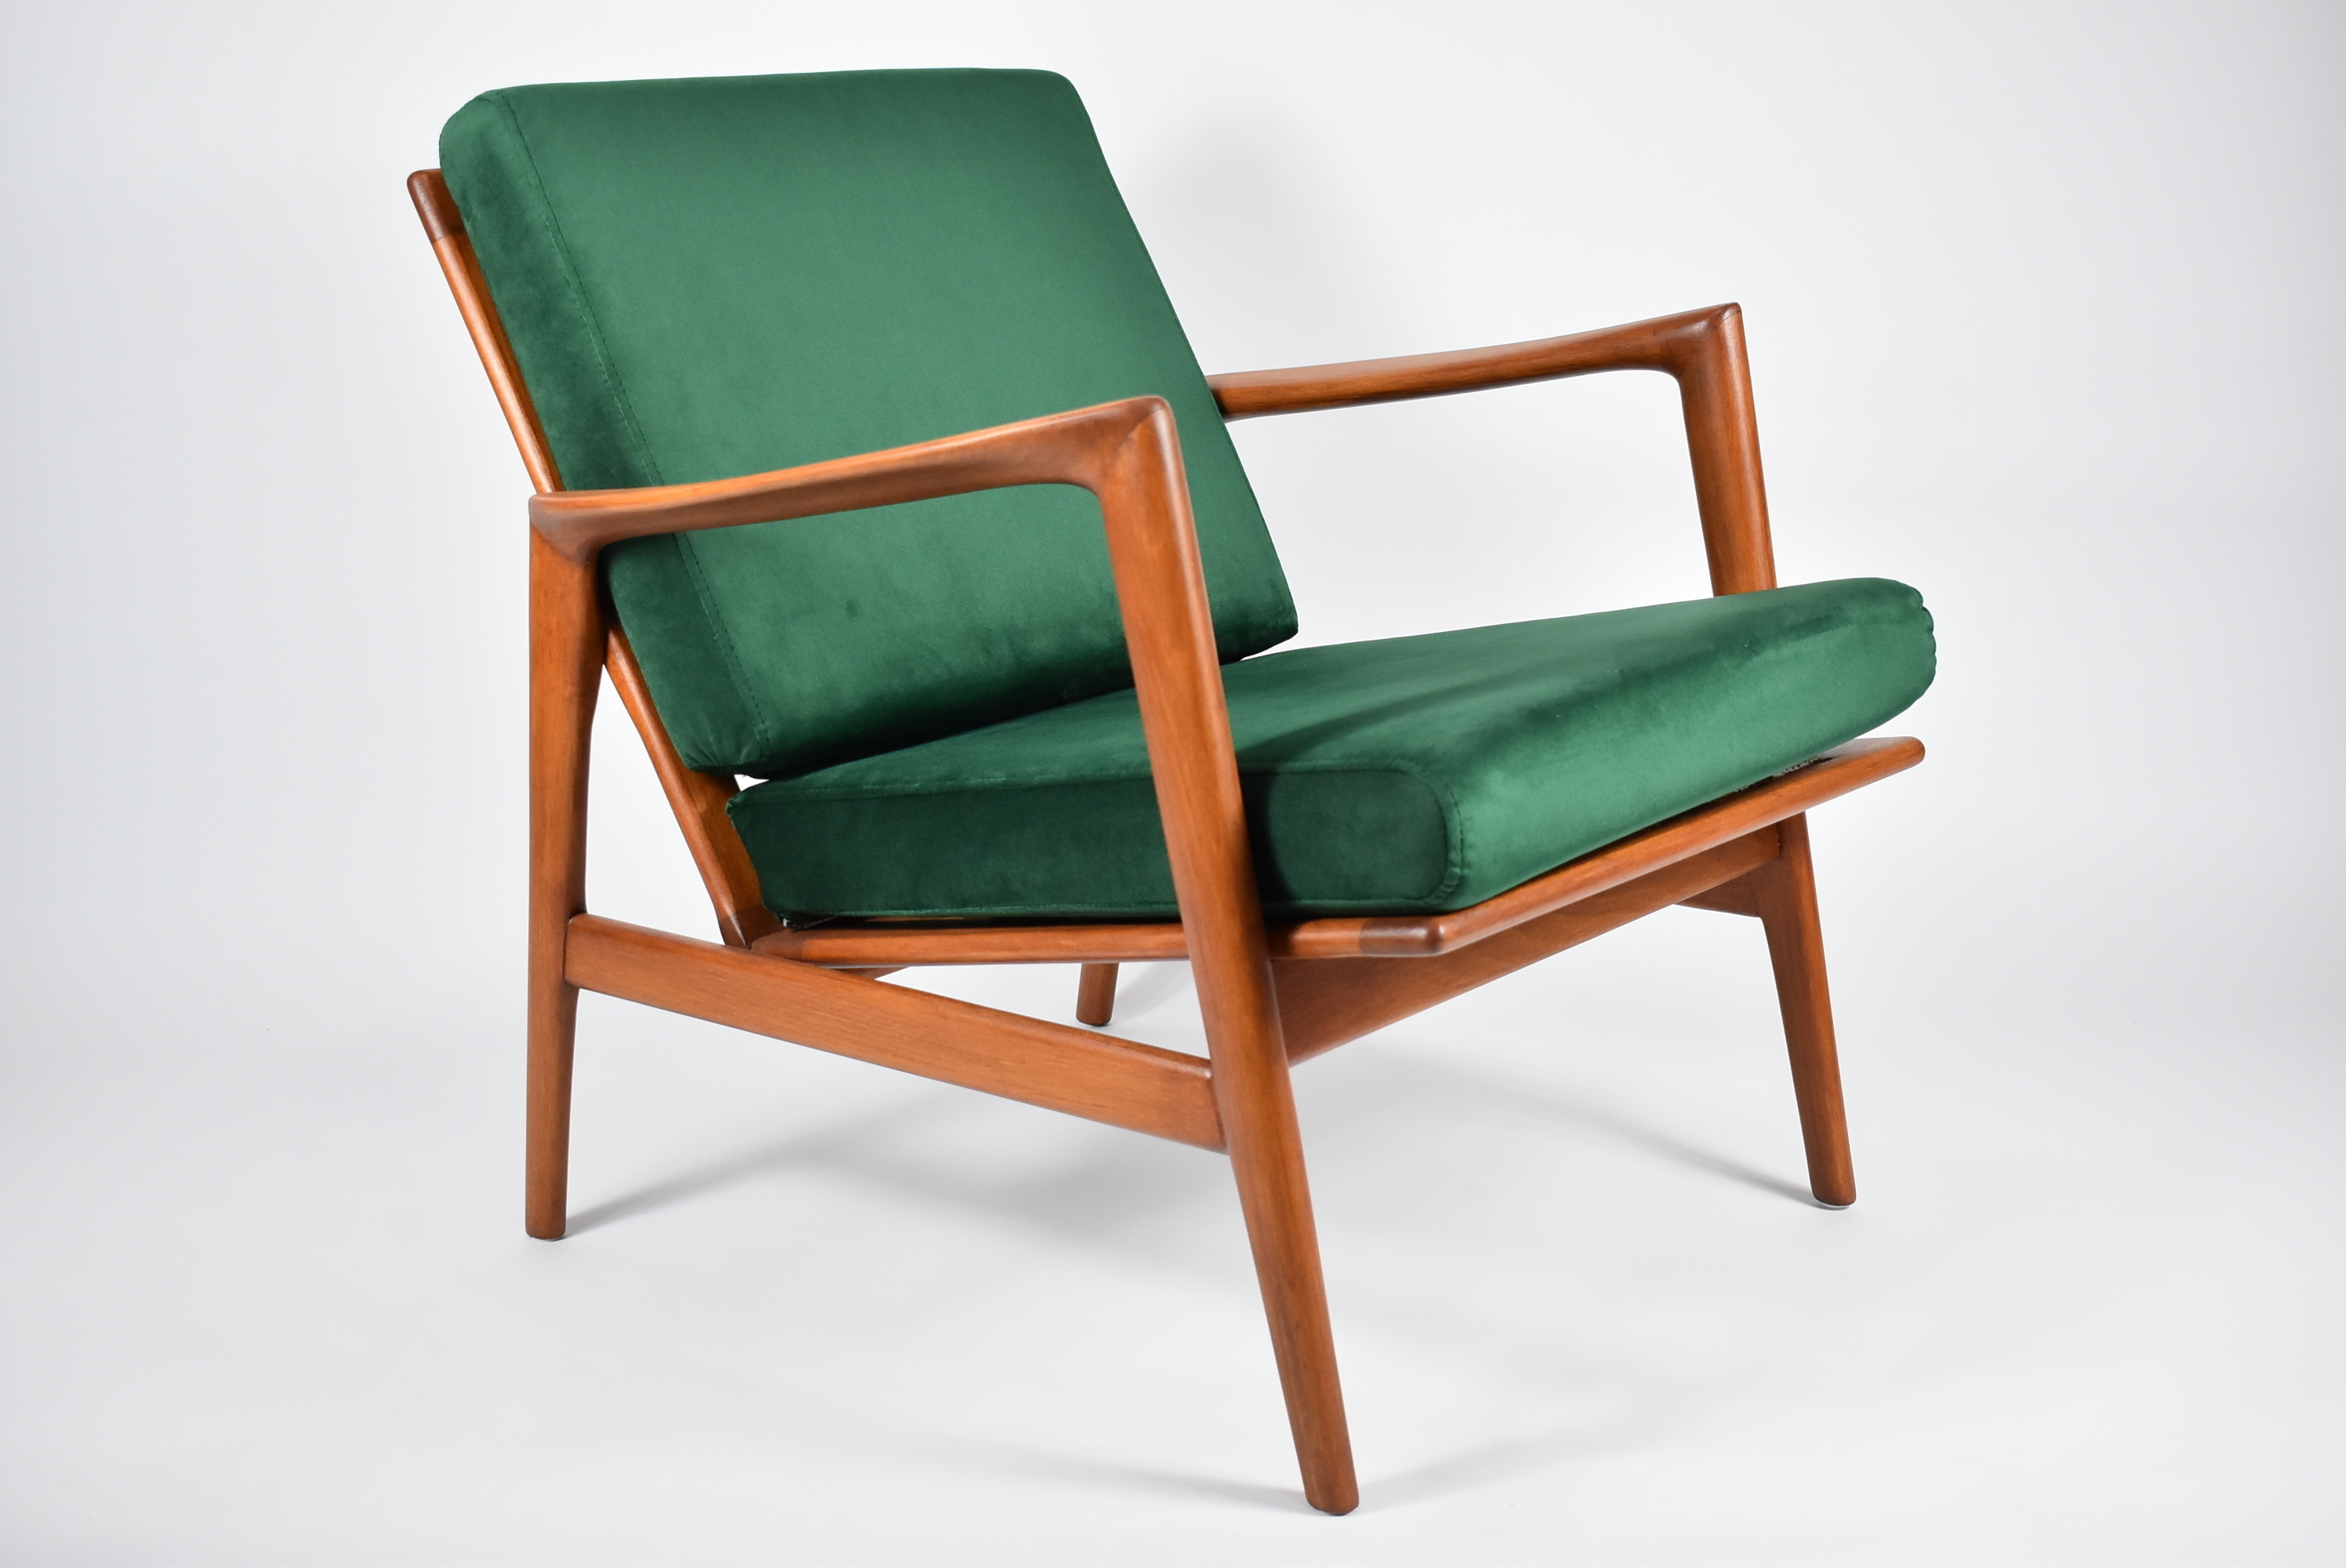 scandinavian armchair model 300 139 stefan swarzedzka furniture factory 1960s green bottle velvet queryID=undefined